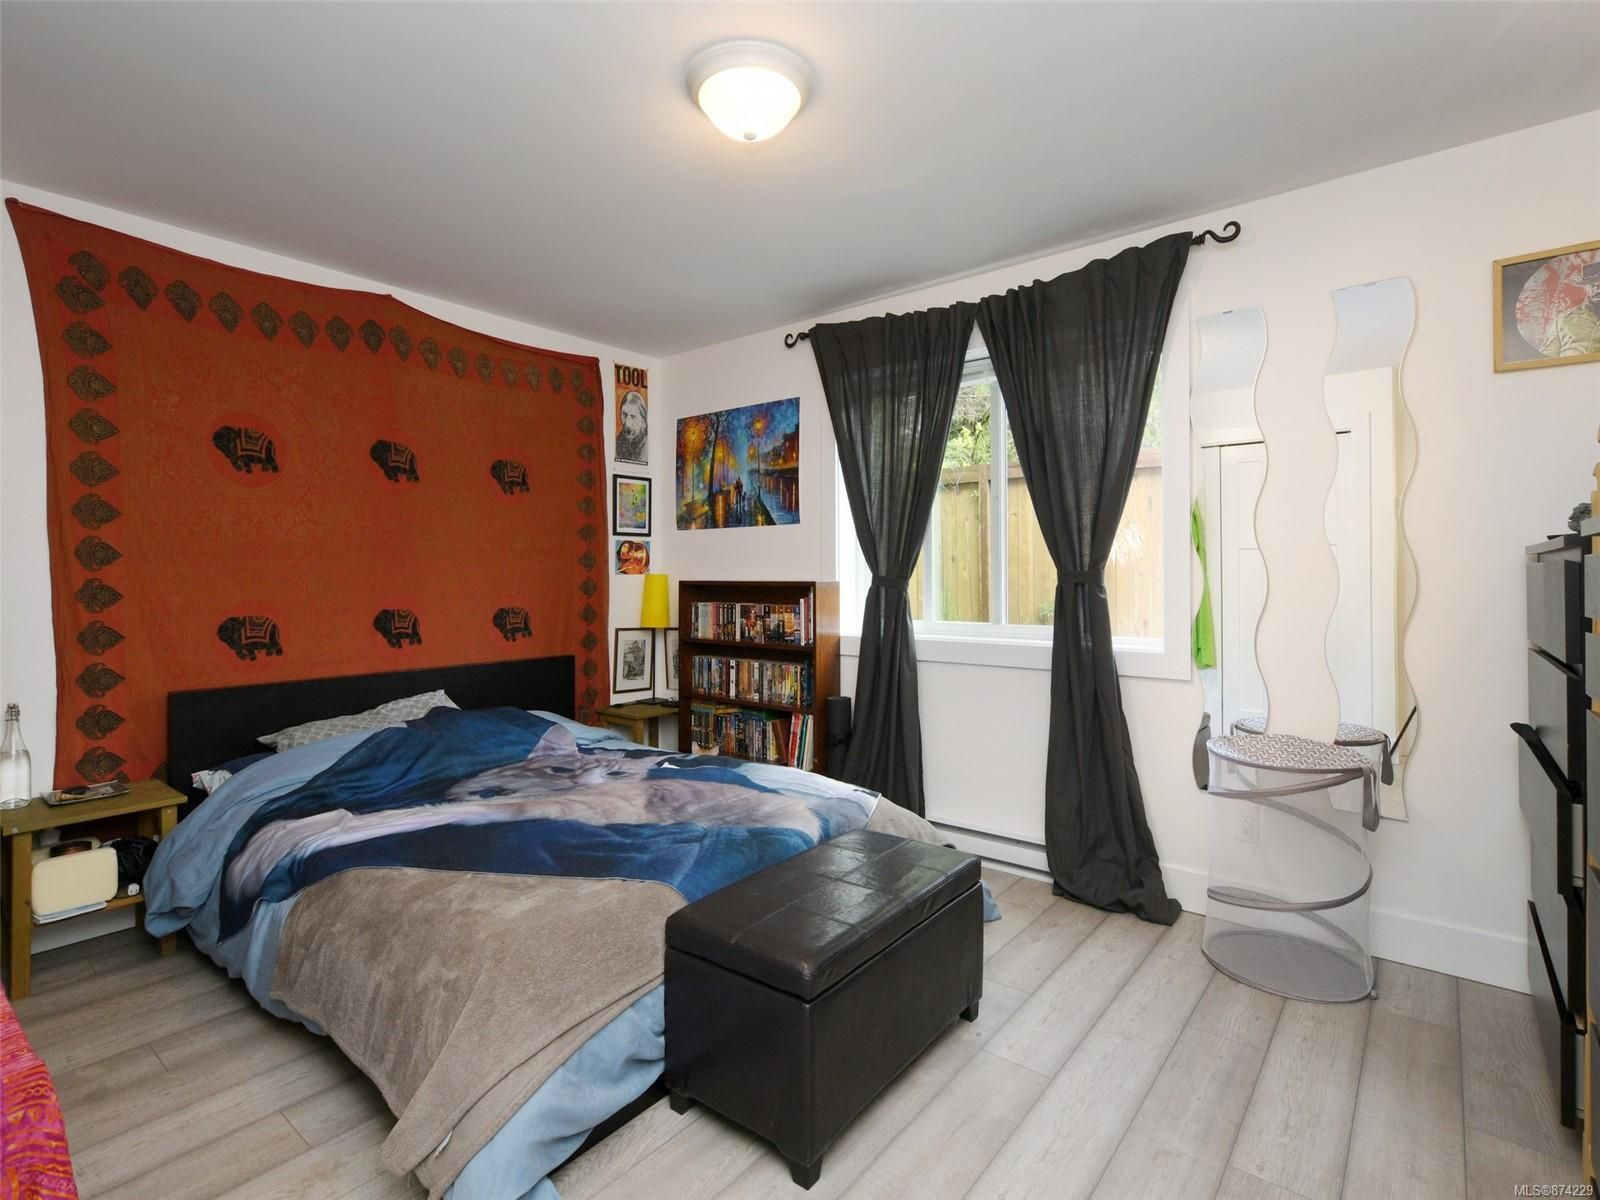 Photo 17: Photos: 1921 Tominny Rd in : Sk Sooke Vill Core House for sale (Sooke)  : MLS®# 874229